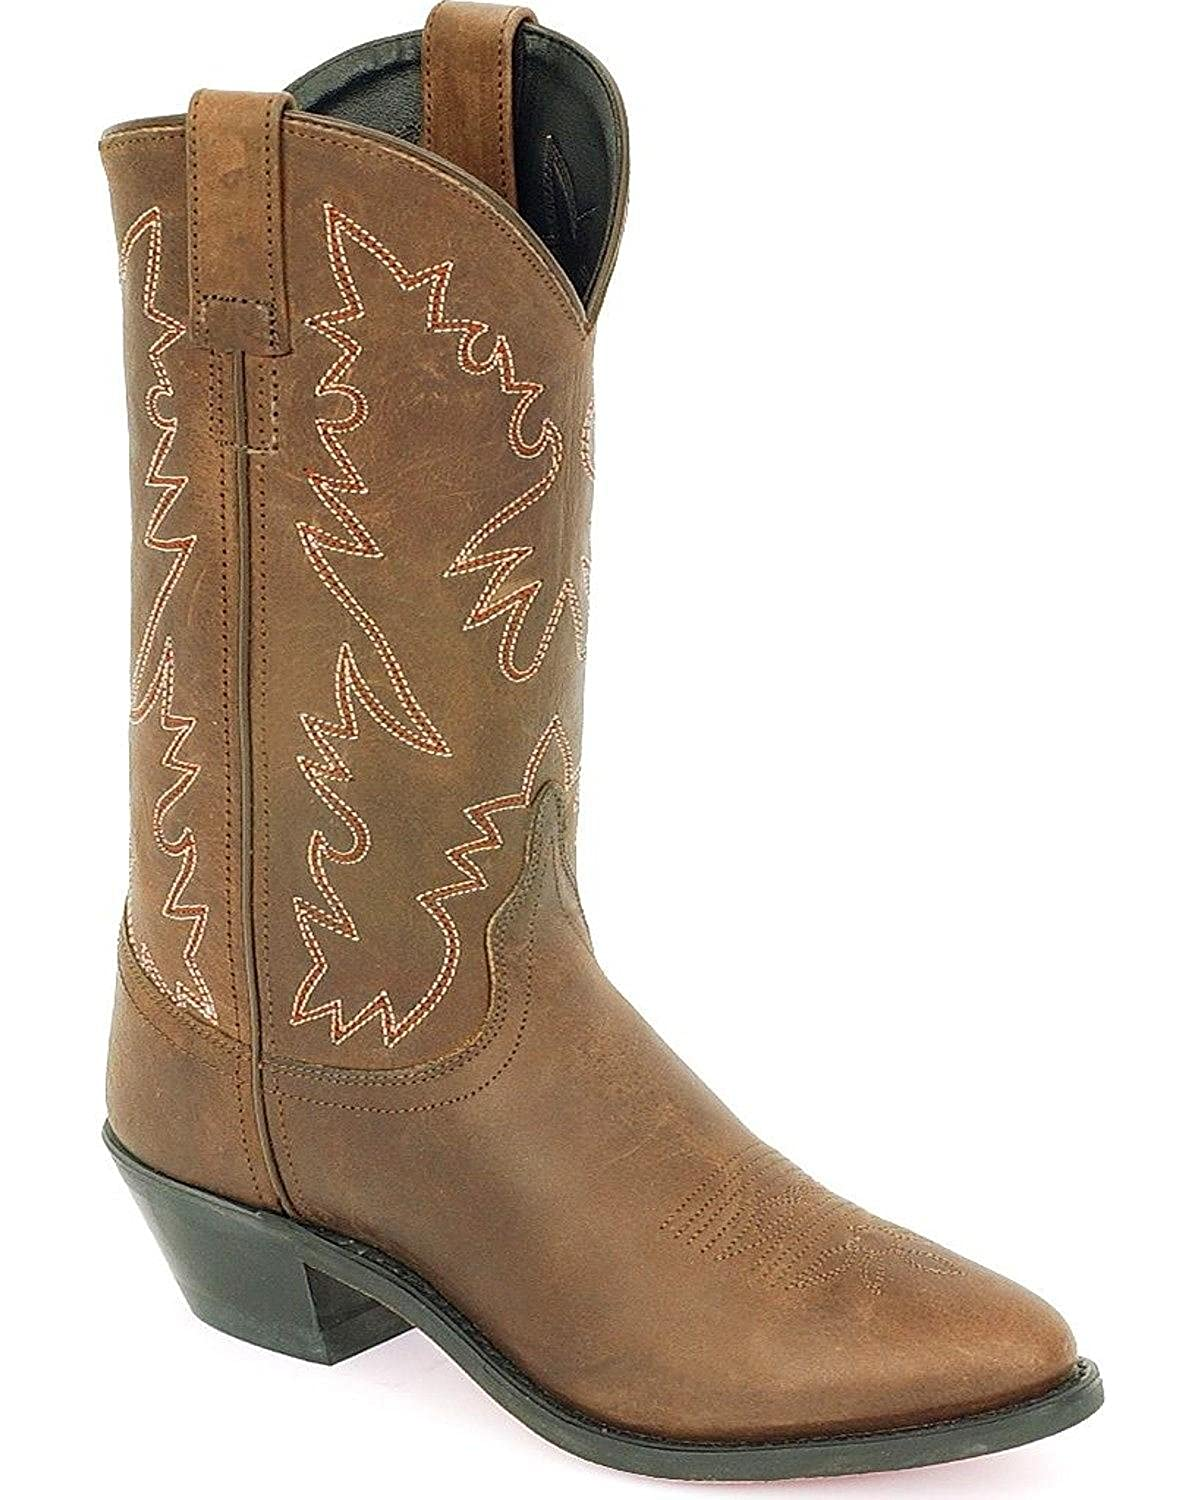 38cd77c4575 Old West Women's Distressed Leather Cowgirl Boot